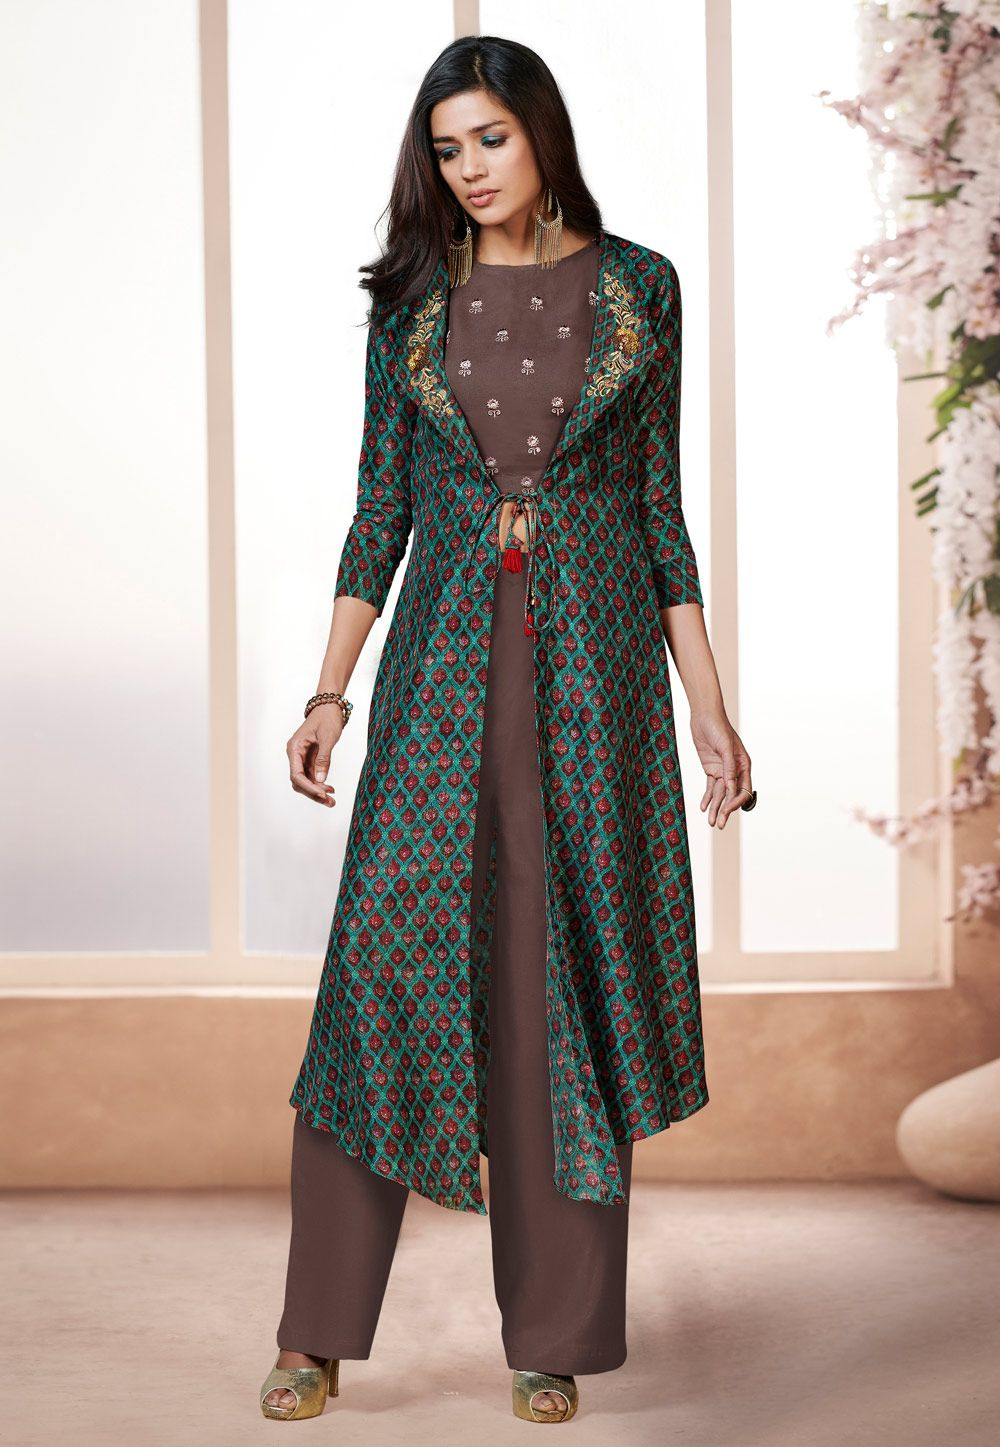 6b5a3b17d0 Buy Brown Rayon Readymade Palazzo Suit With Jacket 157564 online at lowest  price from huge collection of salwar kameez at Indianclothstore.com.